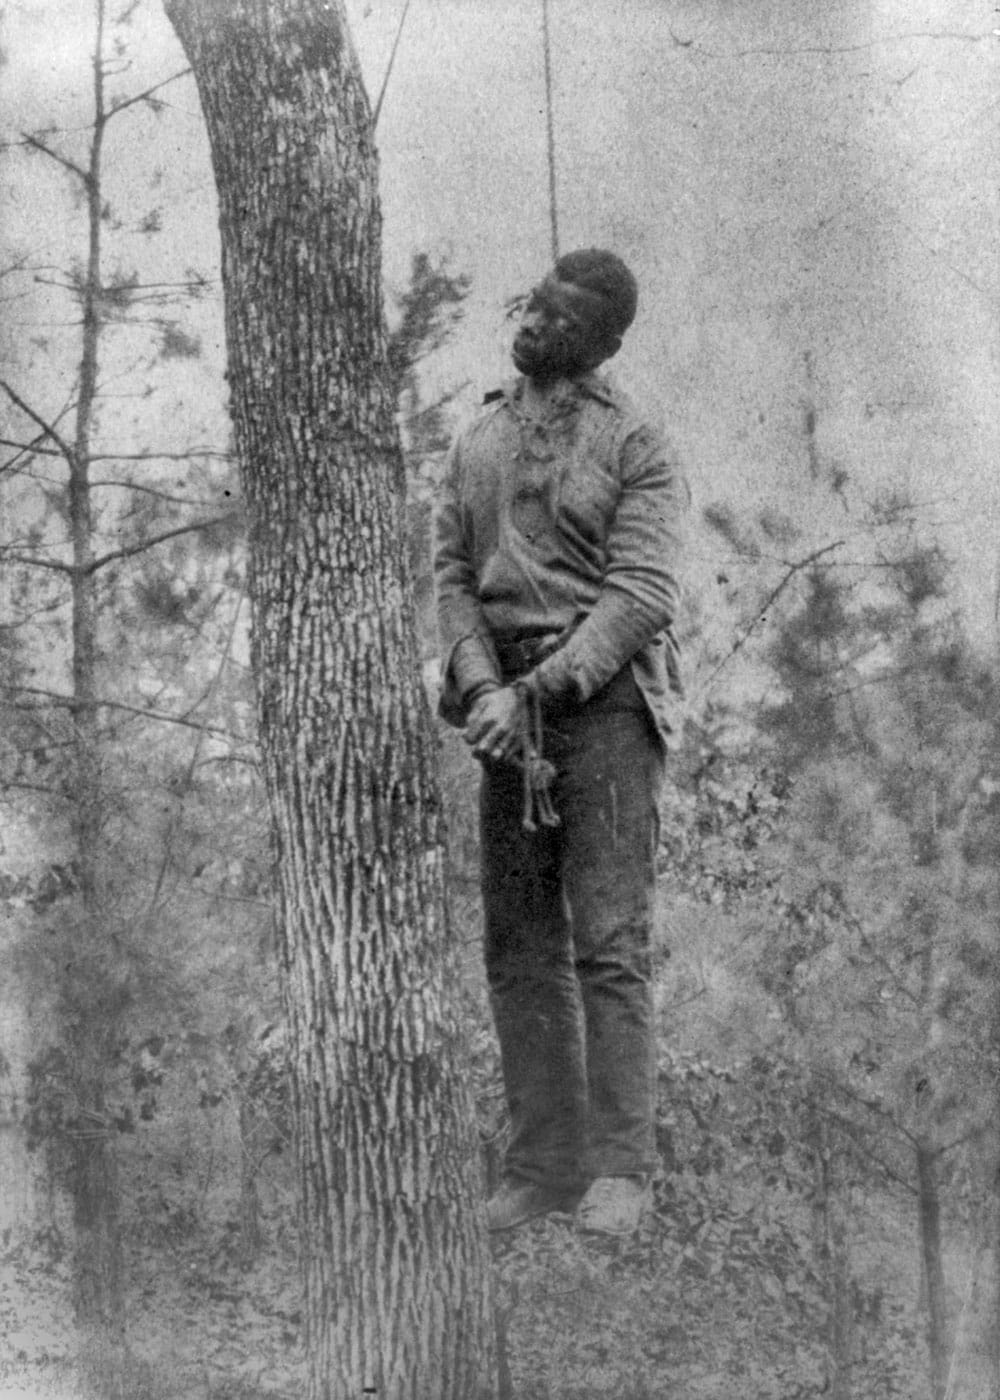 Lynching of a man from 1899